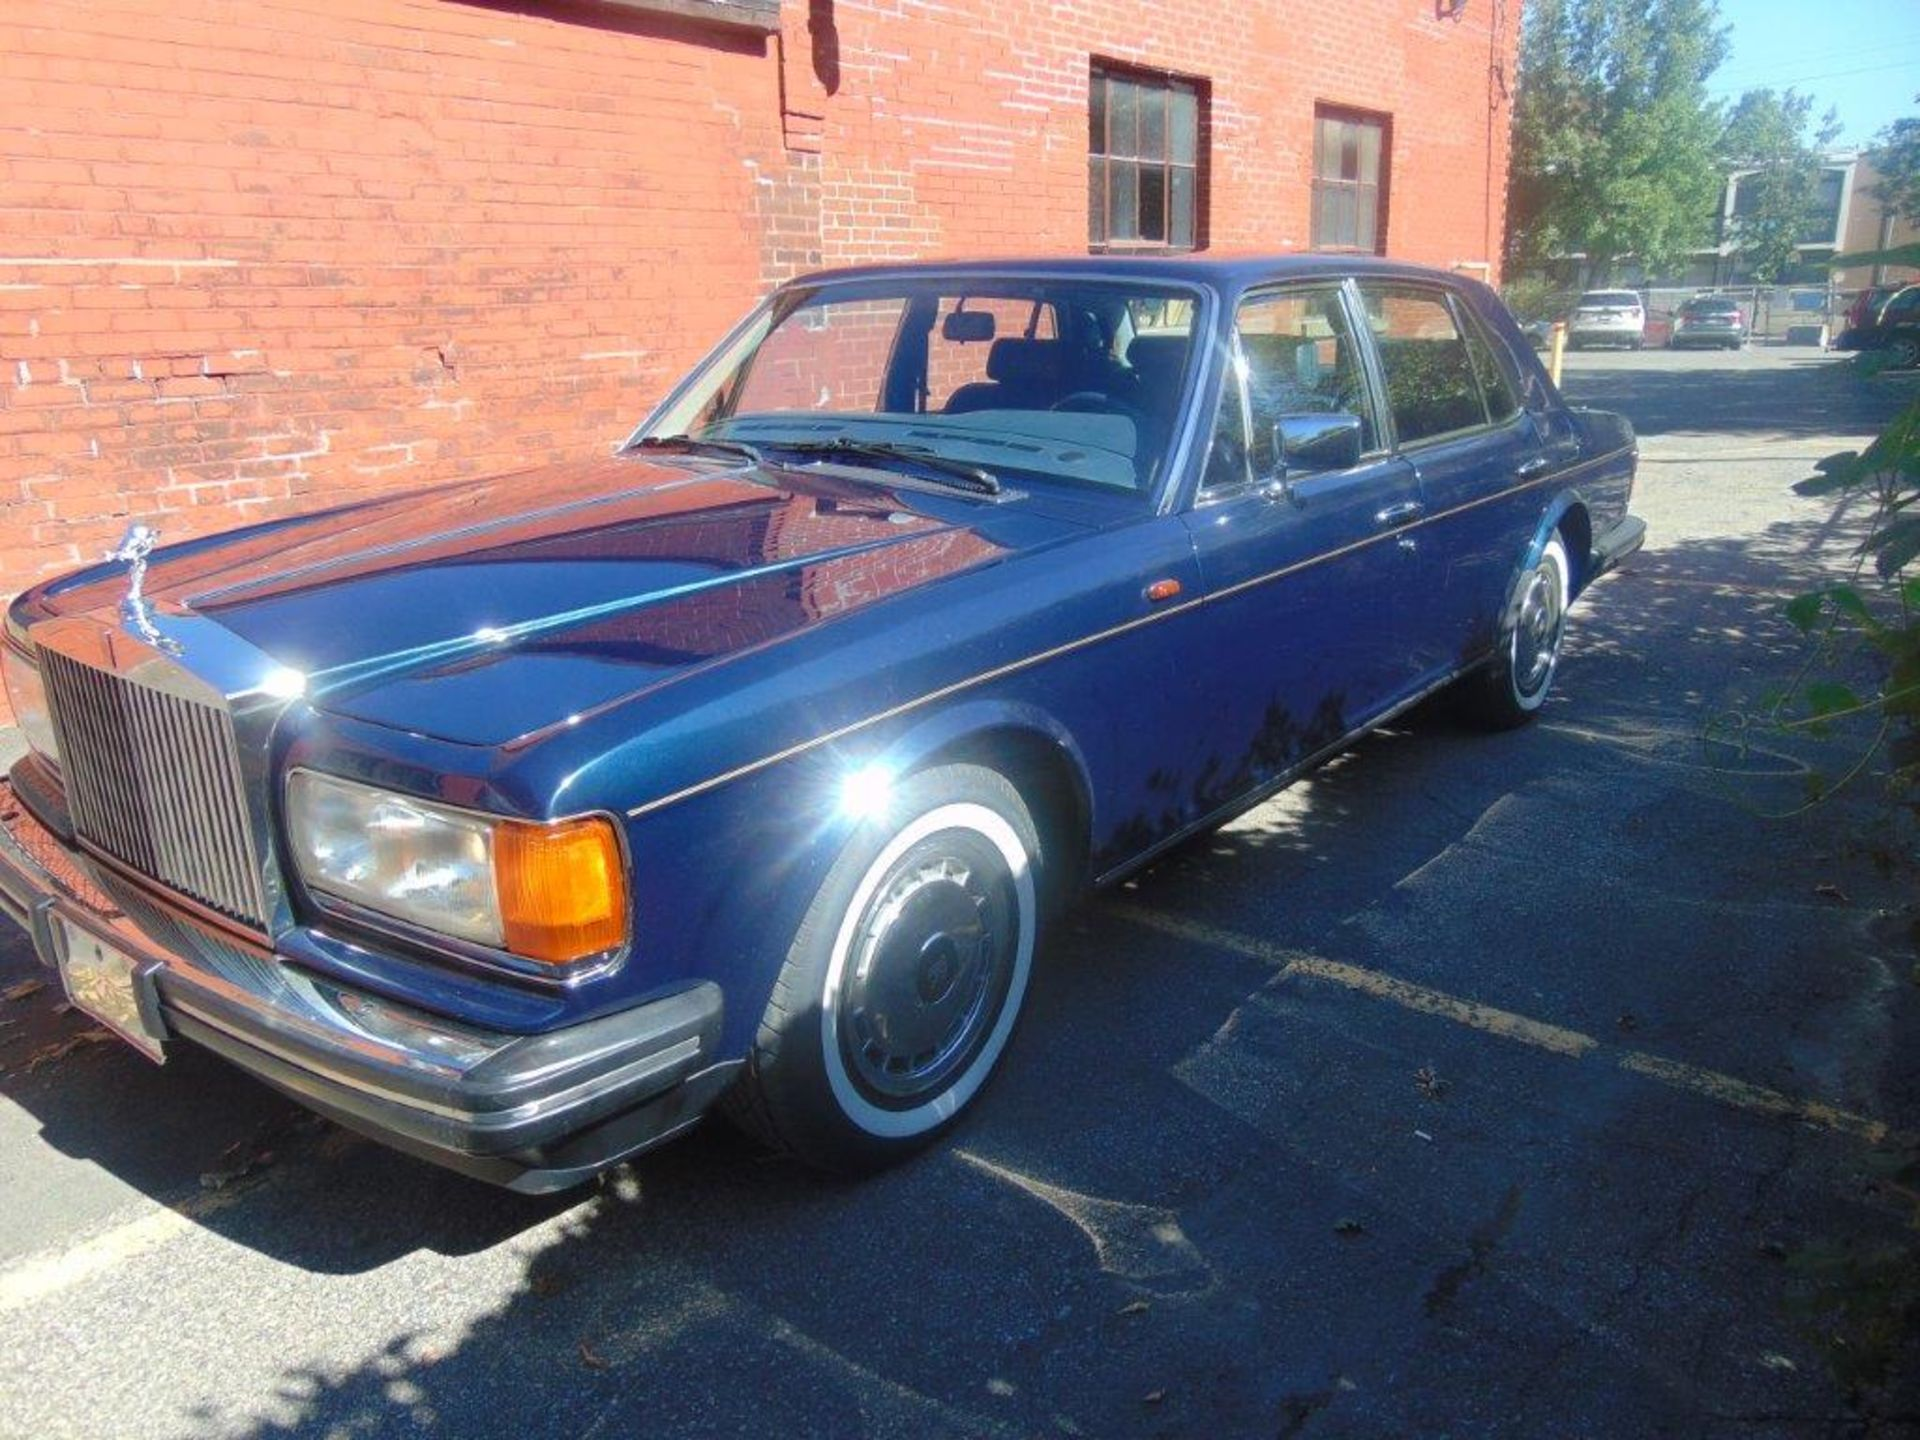 1991 ROLLS-ROYCE SILVER SPIRIT – ROYAL BLUE, 6.8 LIT. AC AND ALL SYSTEMS FULLY FUNCTIONAL, - Image 3 of 11